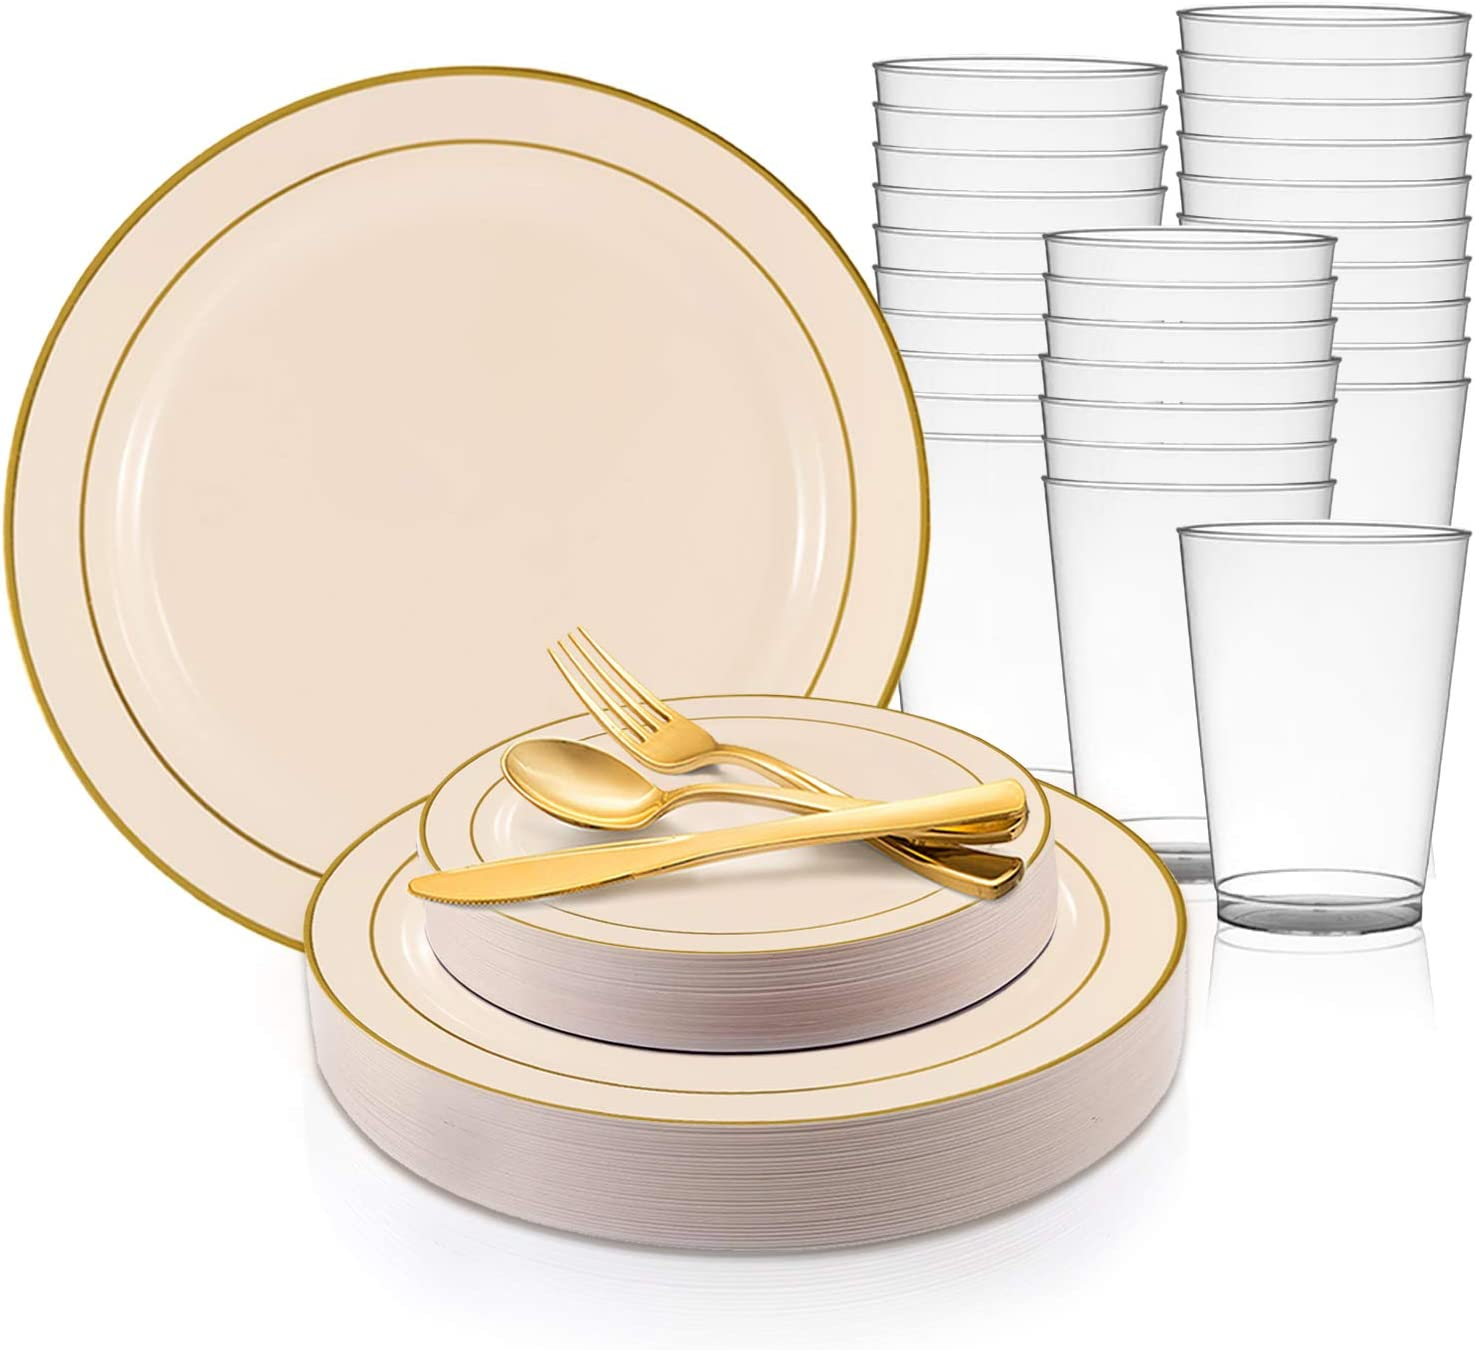 360 Piece Elegant Disposable Plastic Max 69% OFF Milwaukee Mall Set 60 Guest Dinnerware for